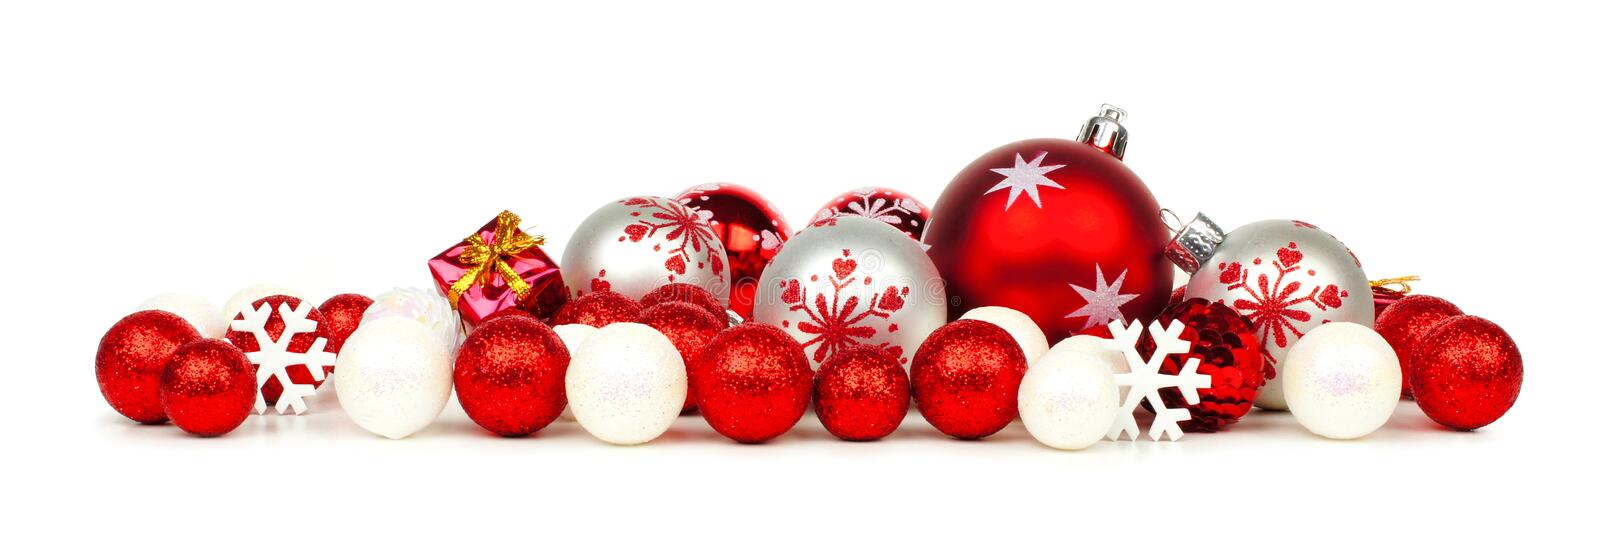 Red and white christmas ornament border stock photo